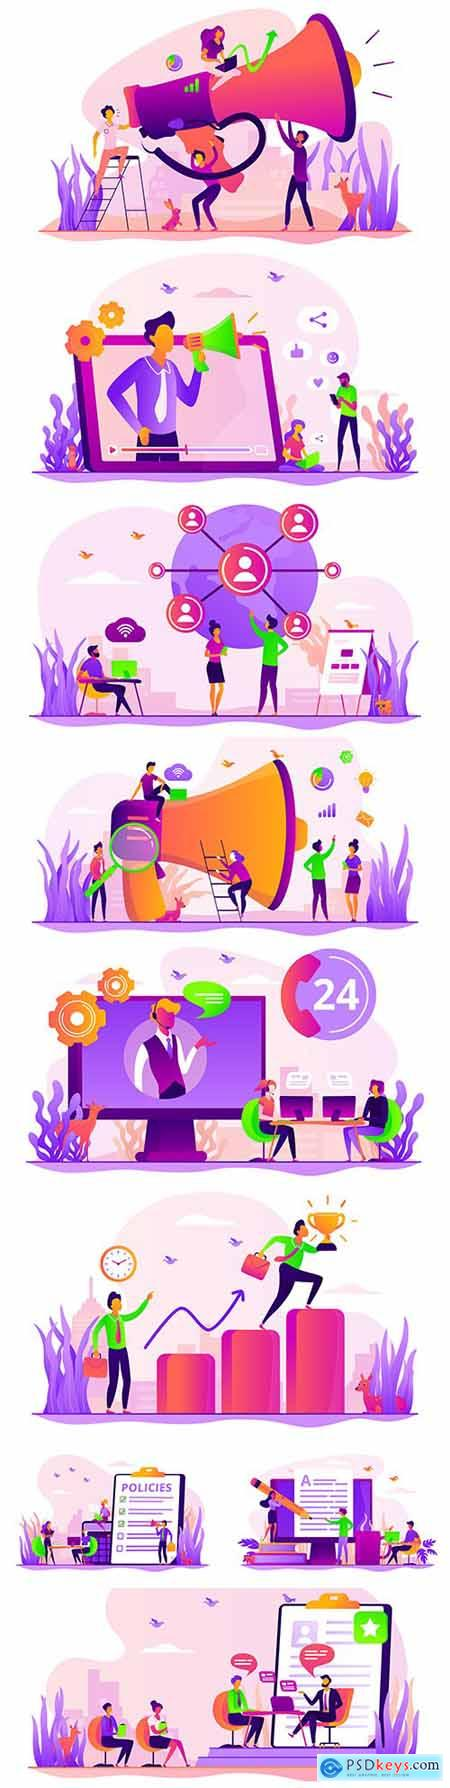 Social network and marketing team flat concept illustrations